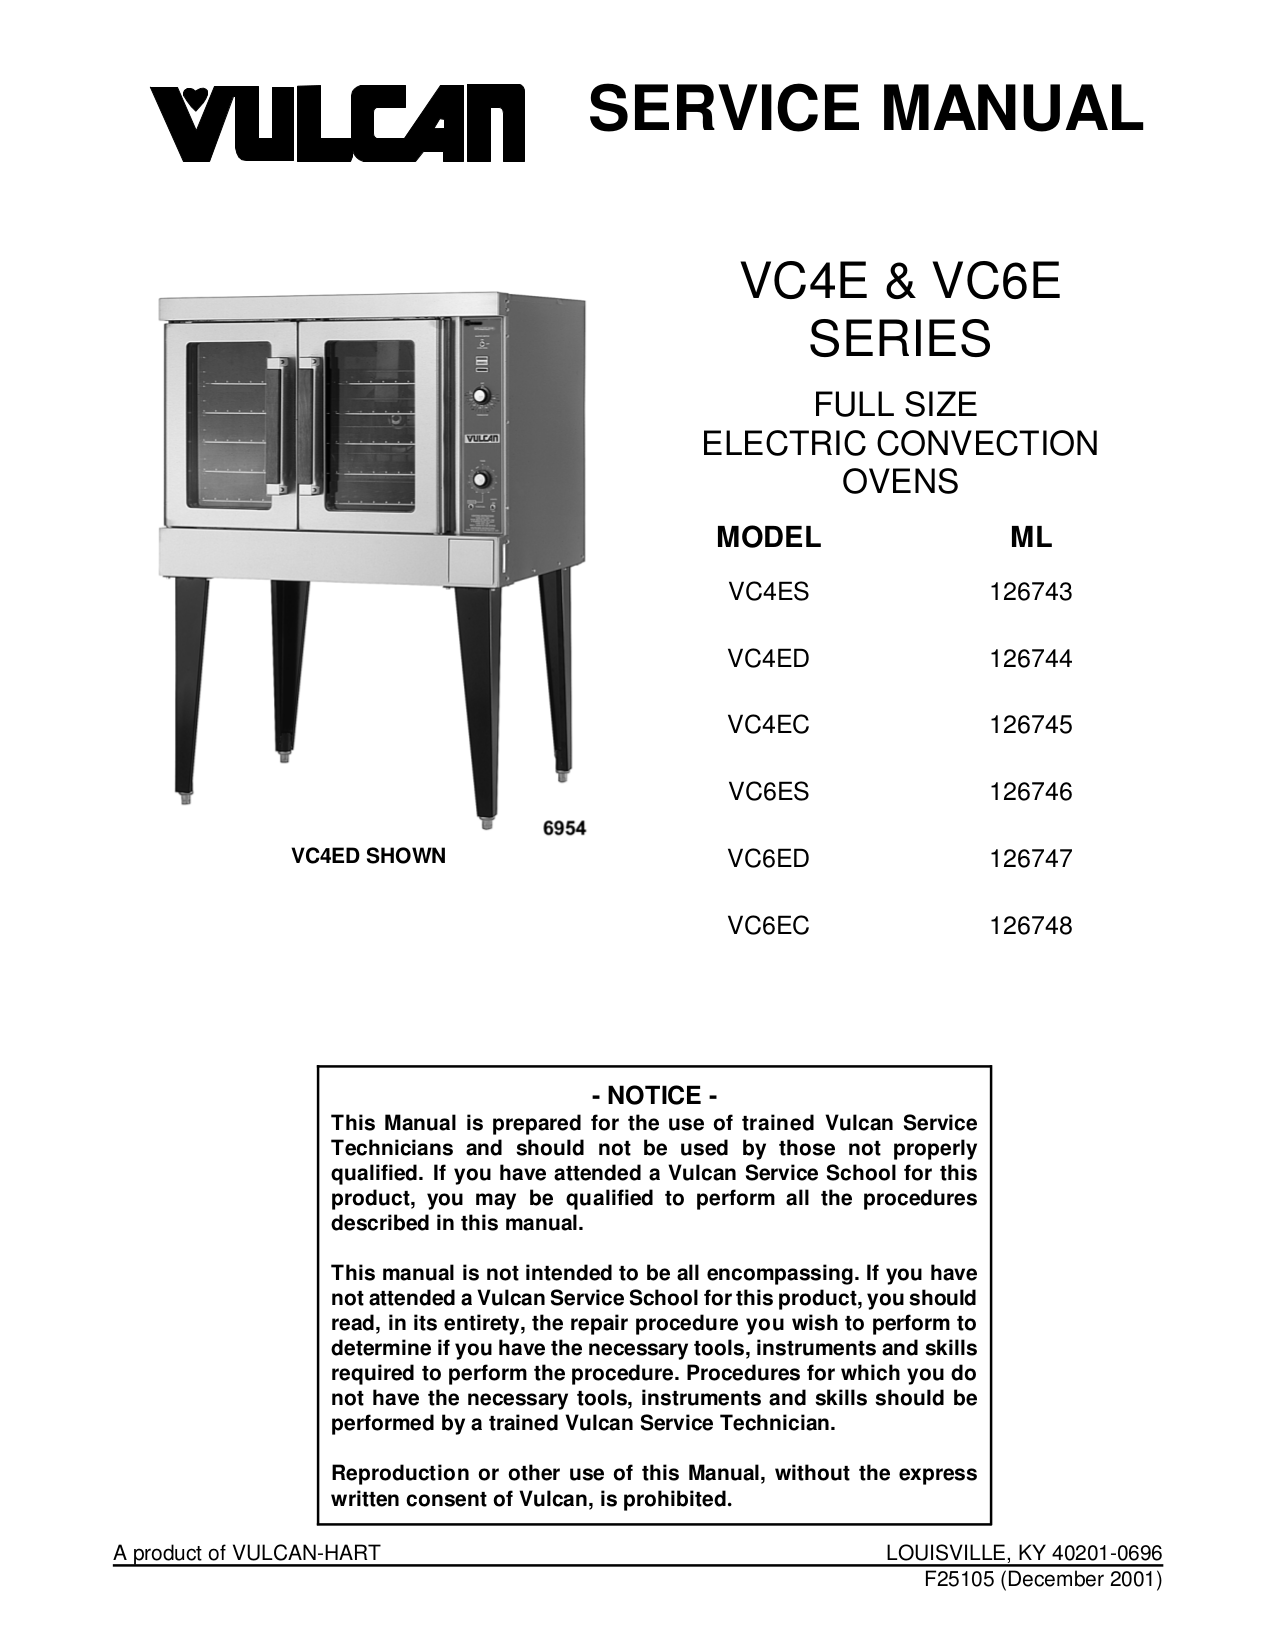 pdf for Vulcan Oven VC4ED manual